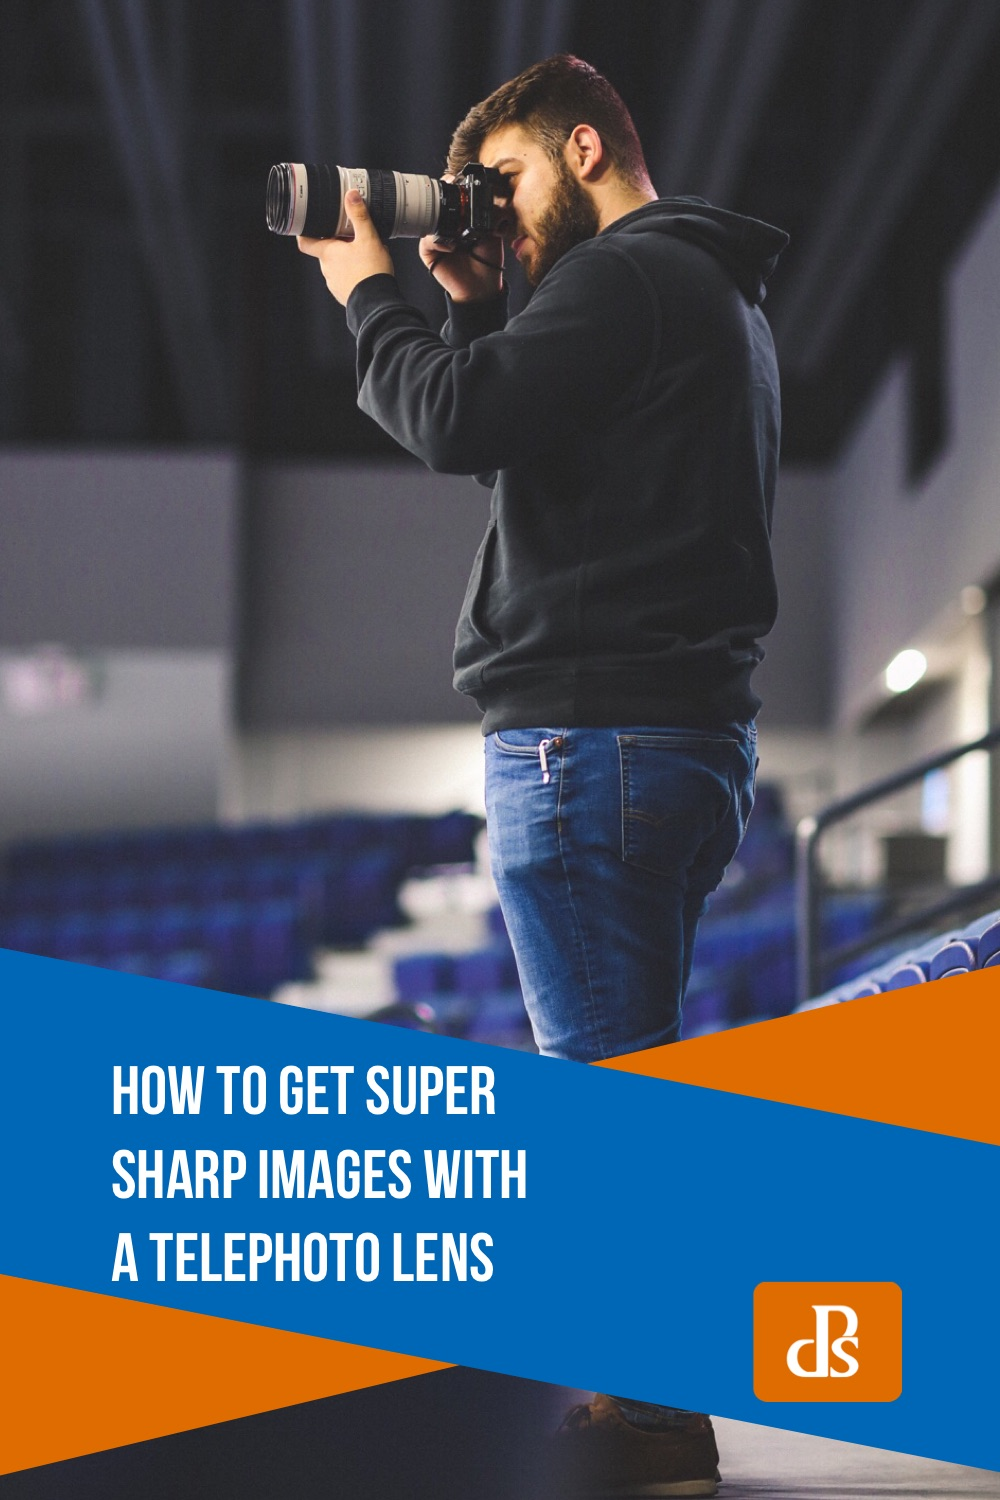 How to Maximize Sharpness with a Telephoto Lens